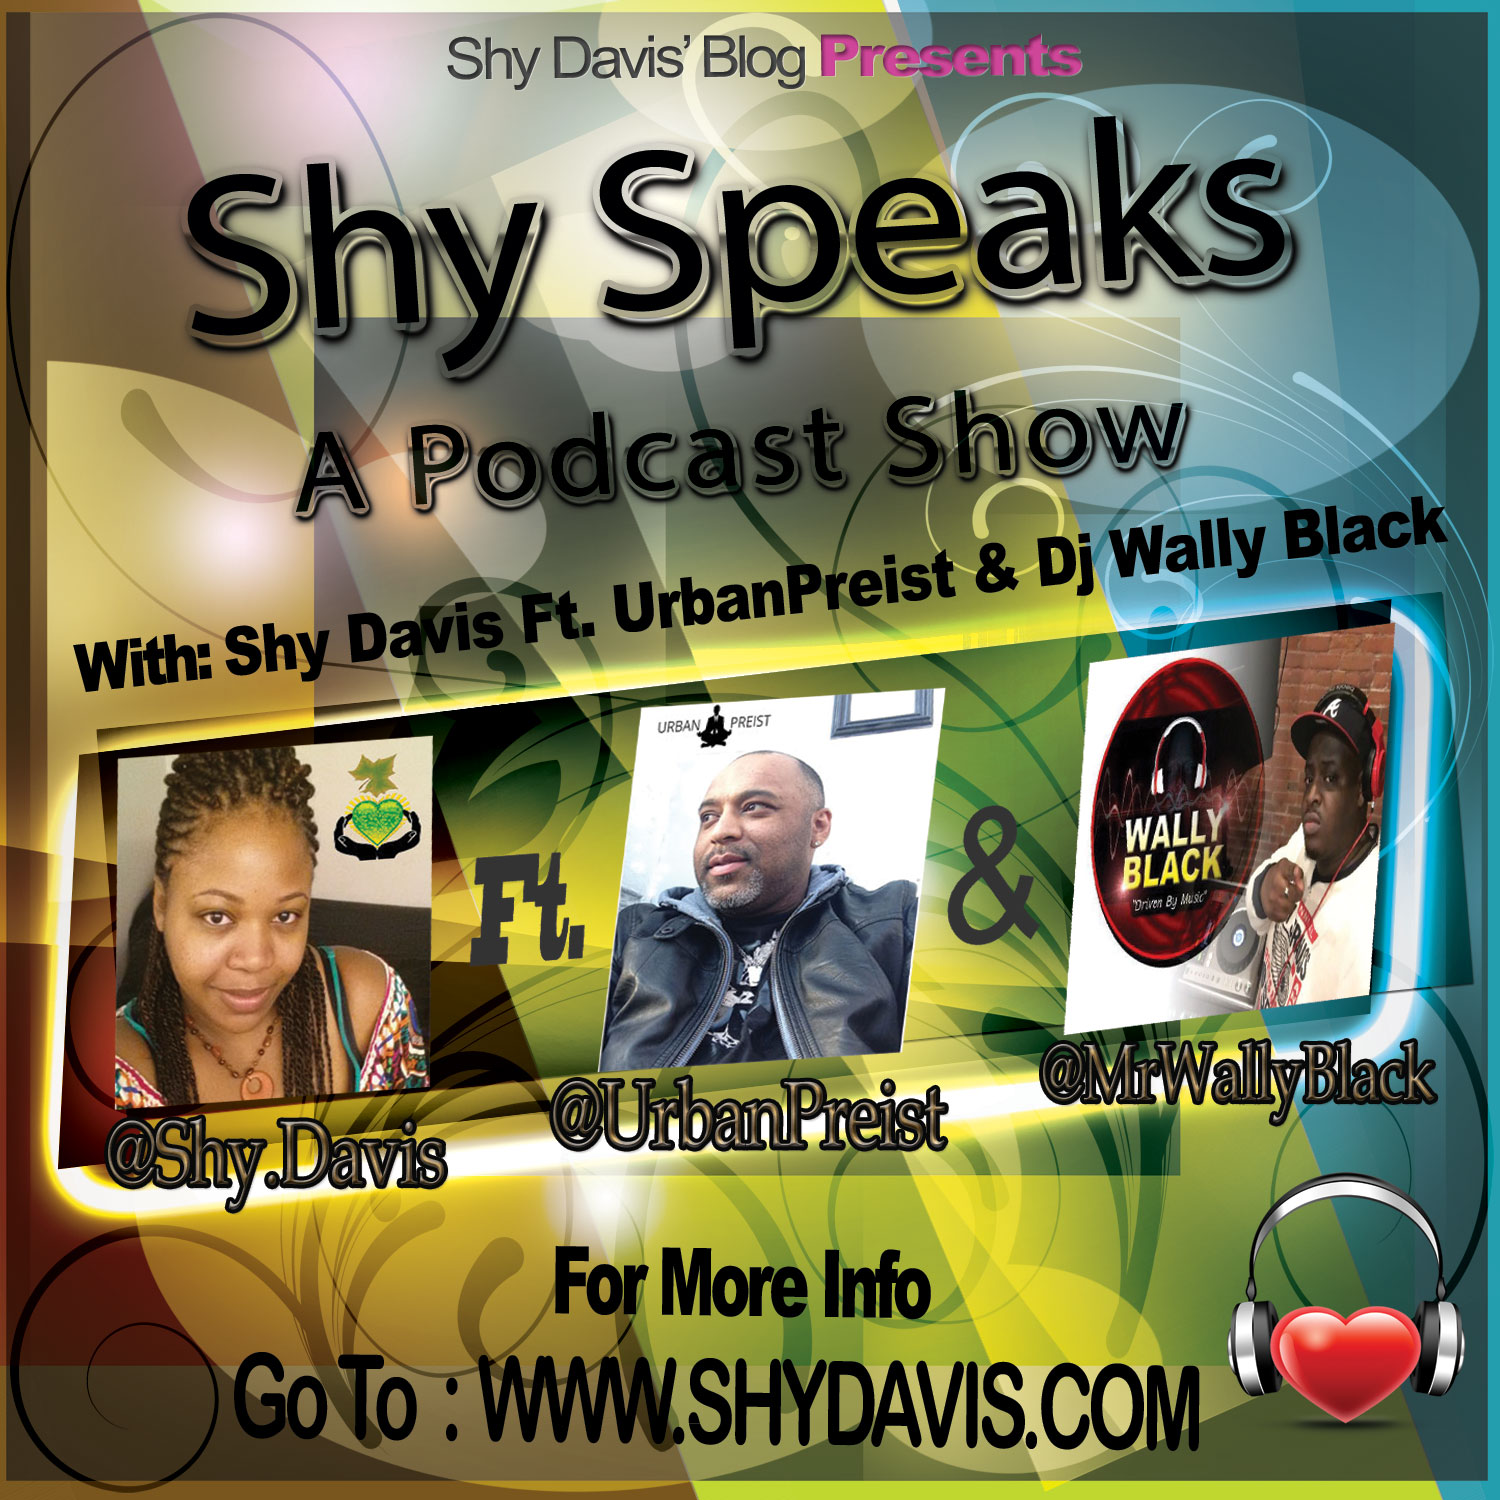 Shy-Podcast-Show-Artwork